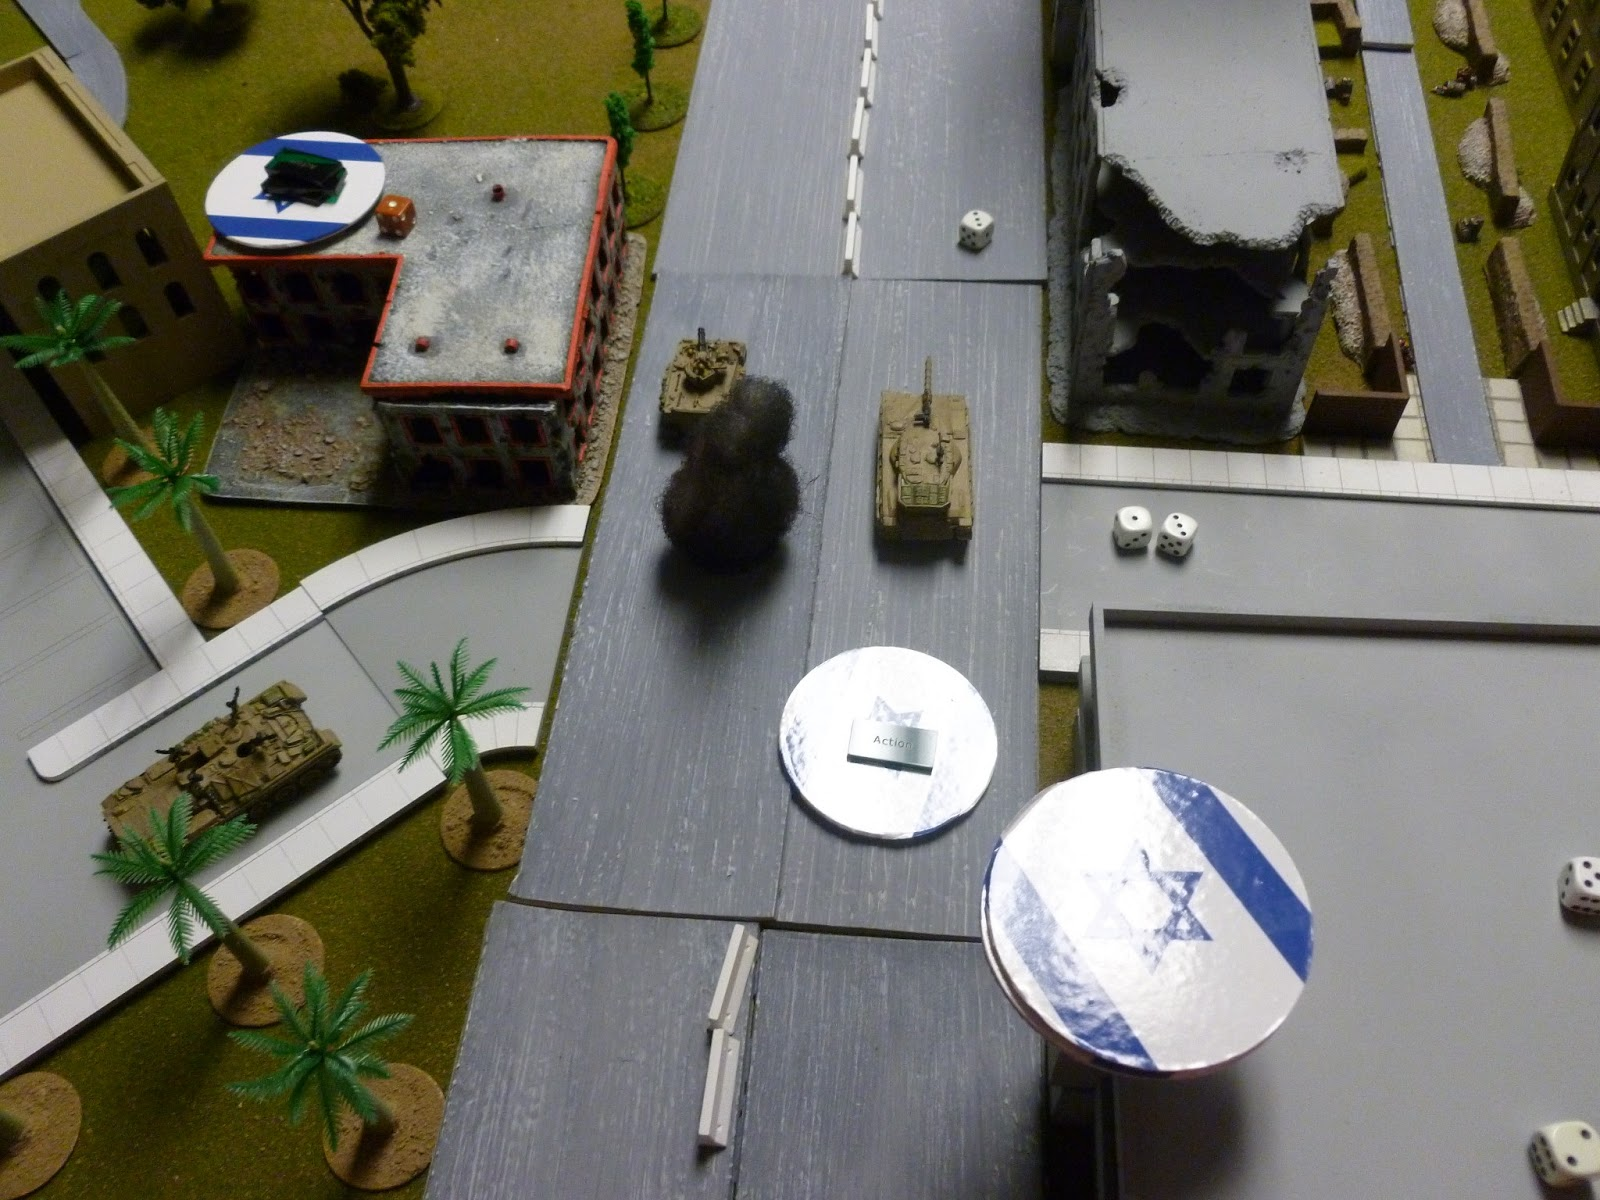 Just as the IDF Blind gained the rooftop, the PLO got some fire-support from its mortar teams, firing on a pre-registered spot in the intersection. This fire did little to slow the IDF advance.